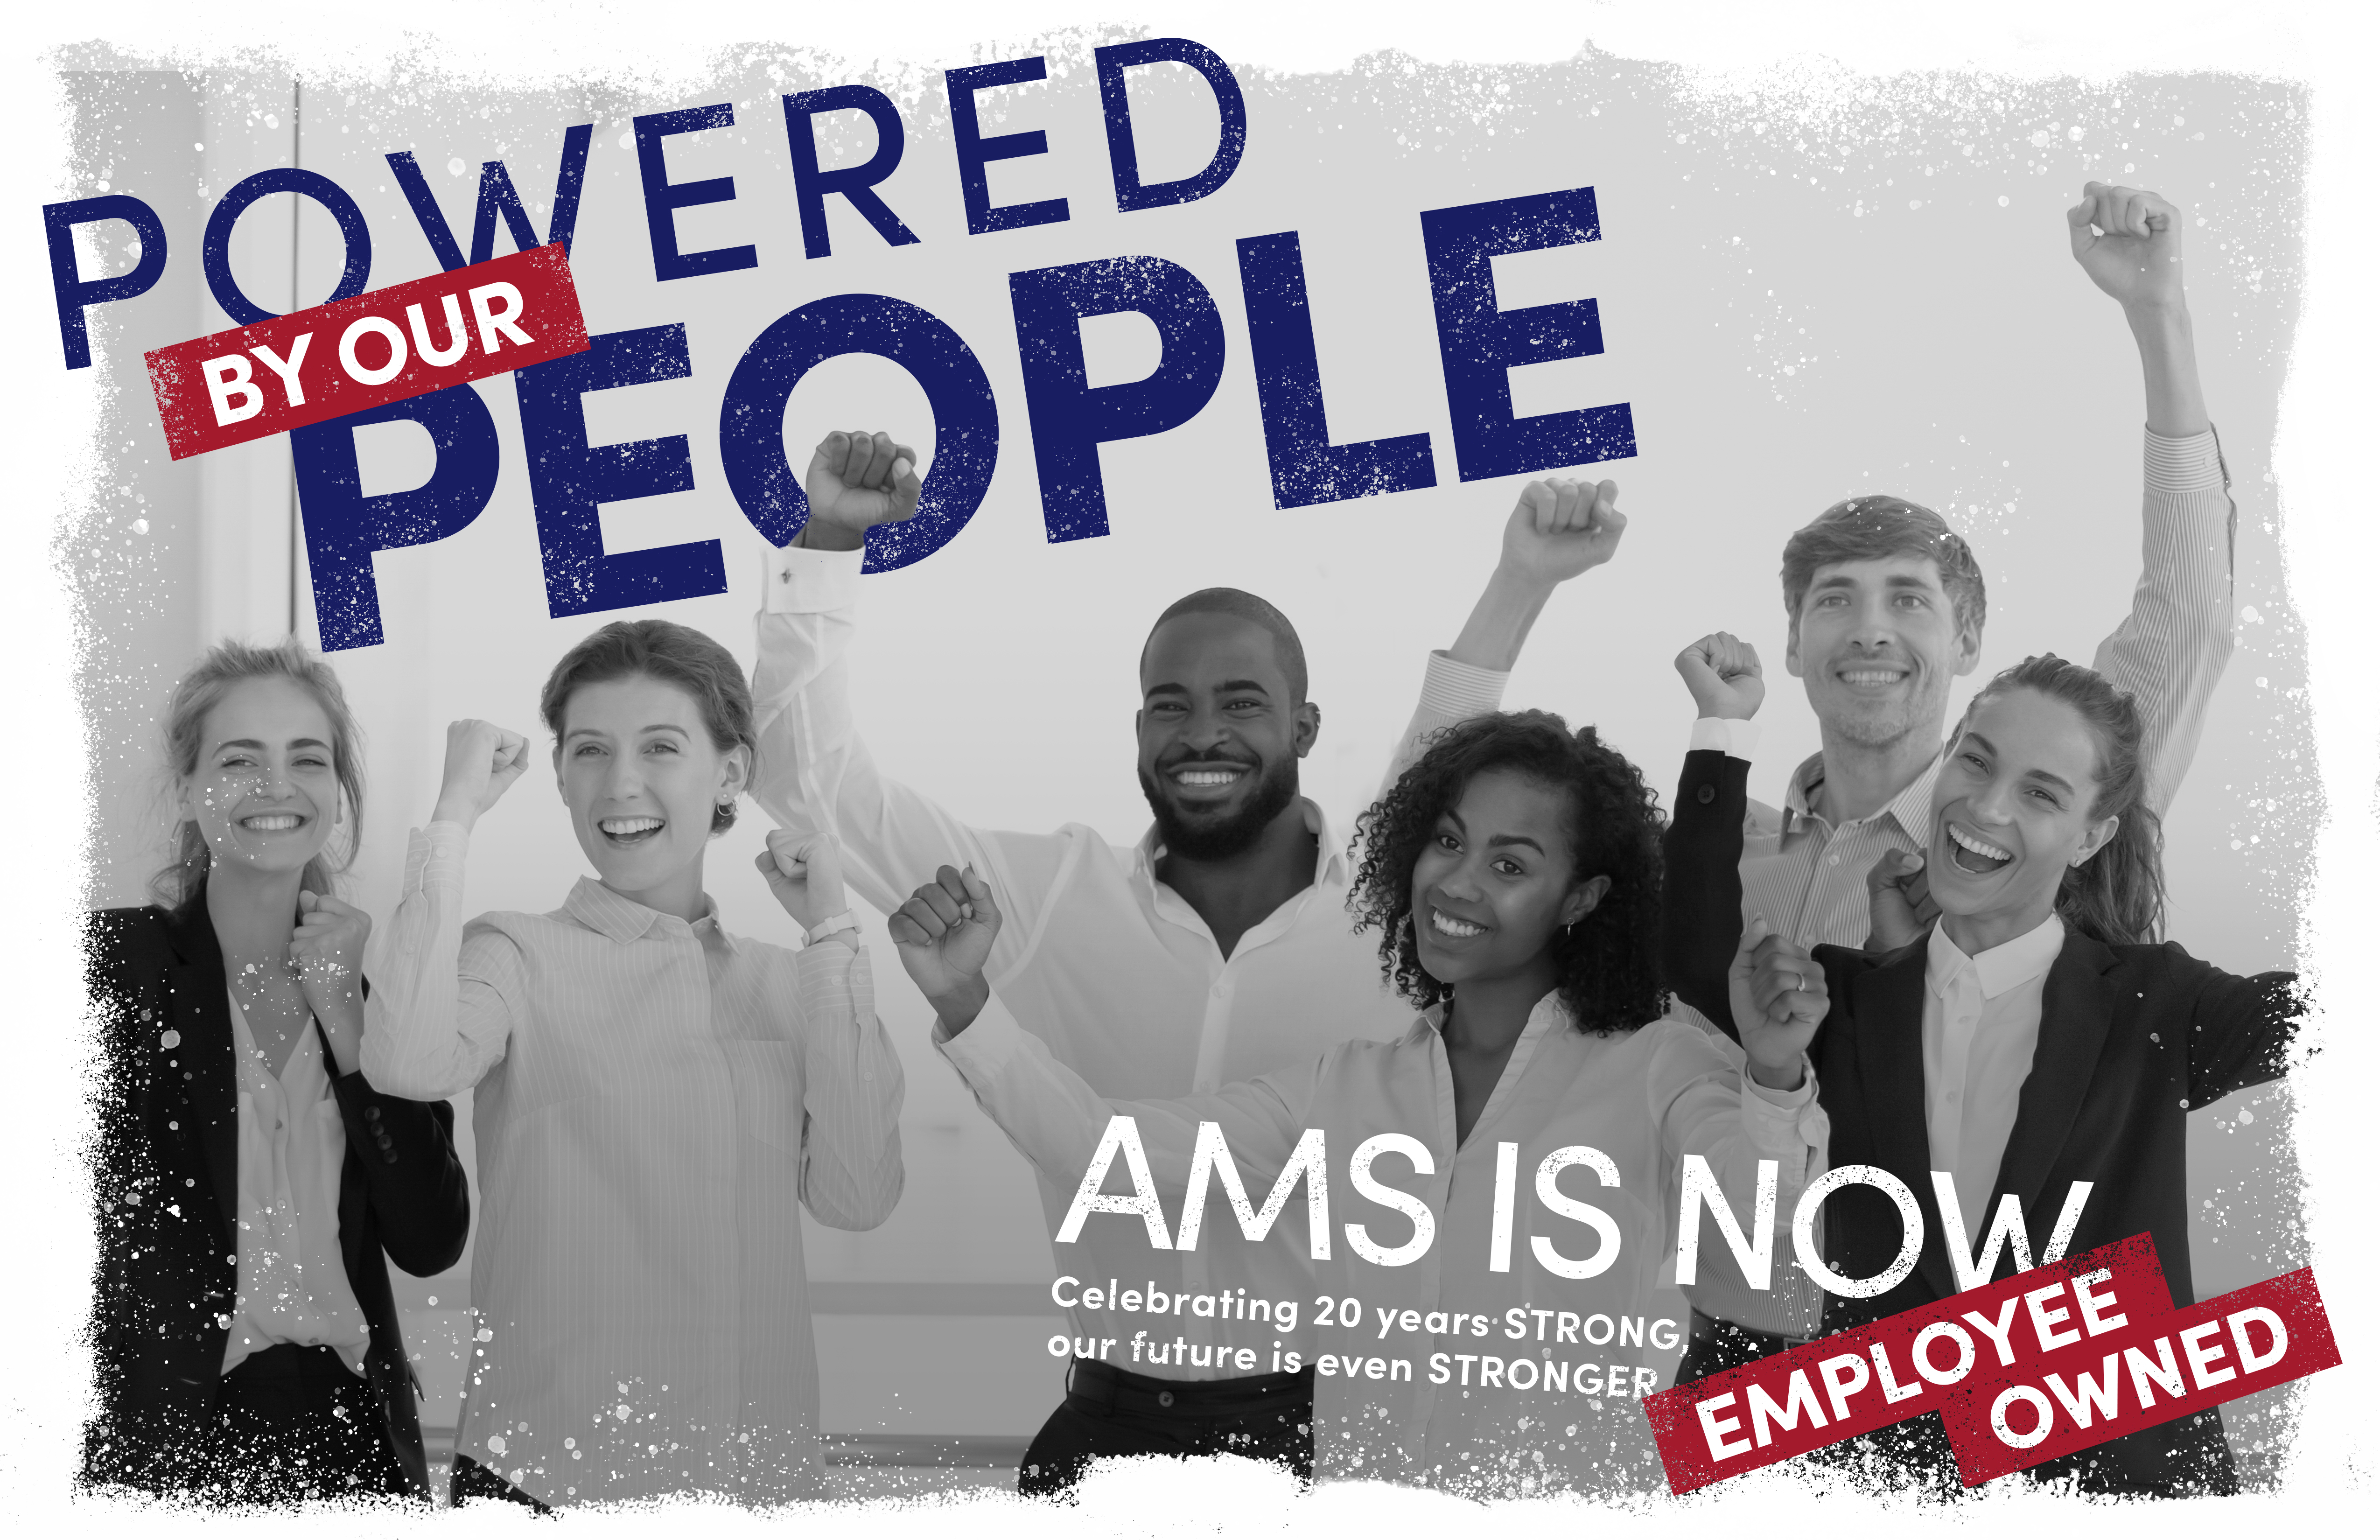 AMS is now employee owned!